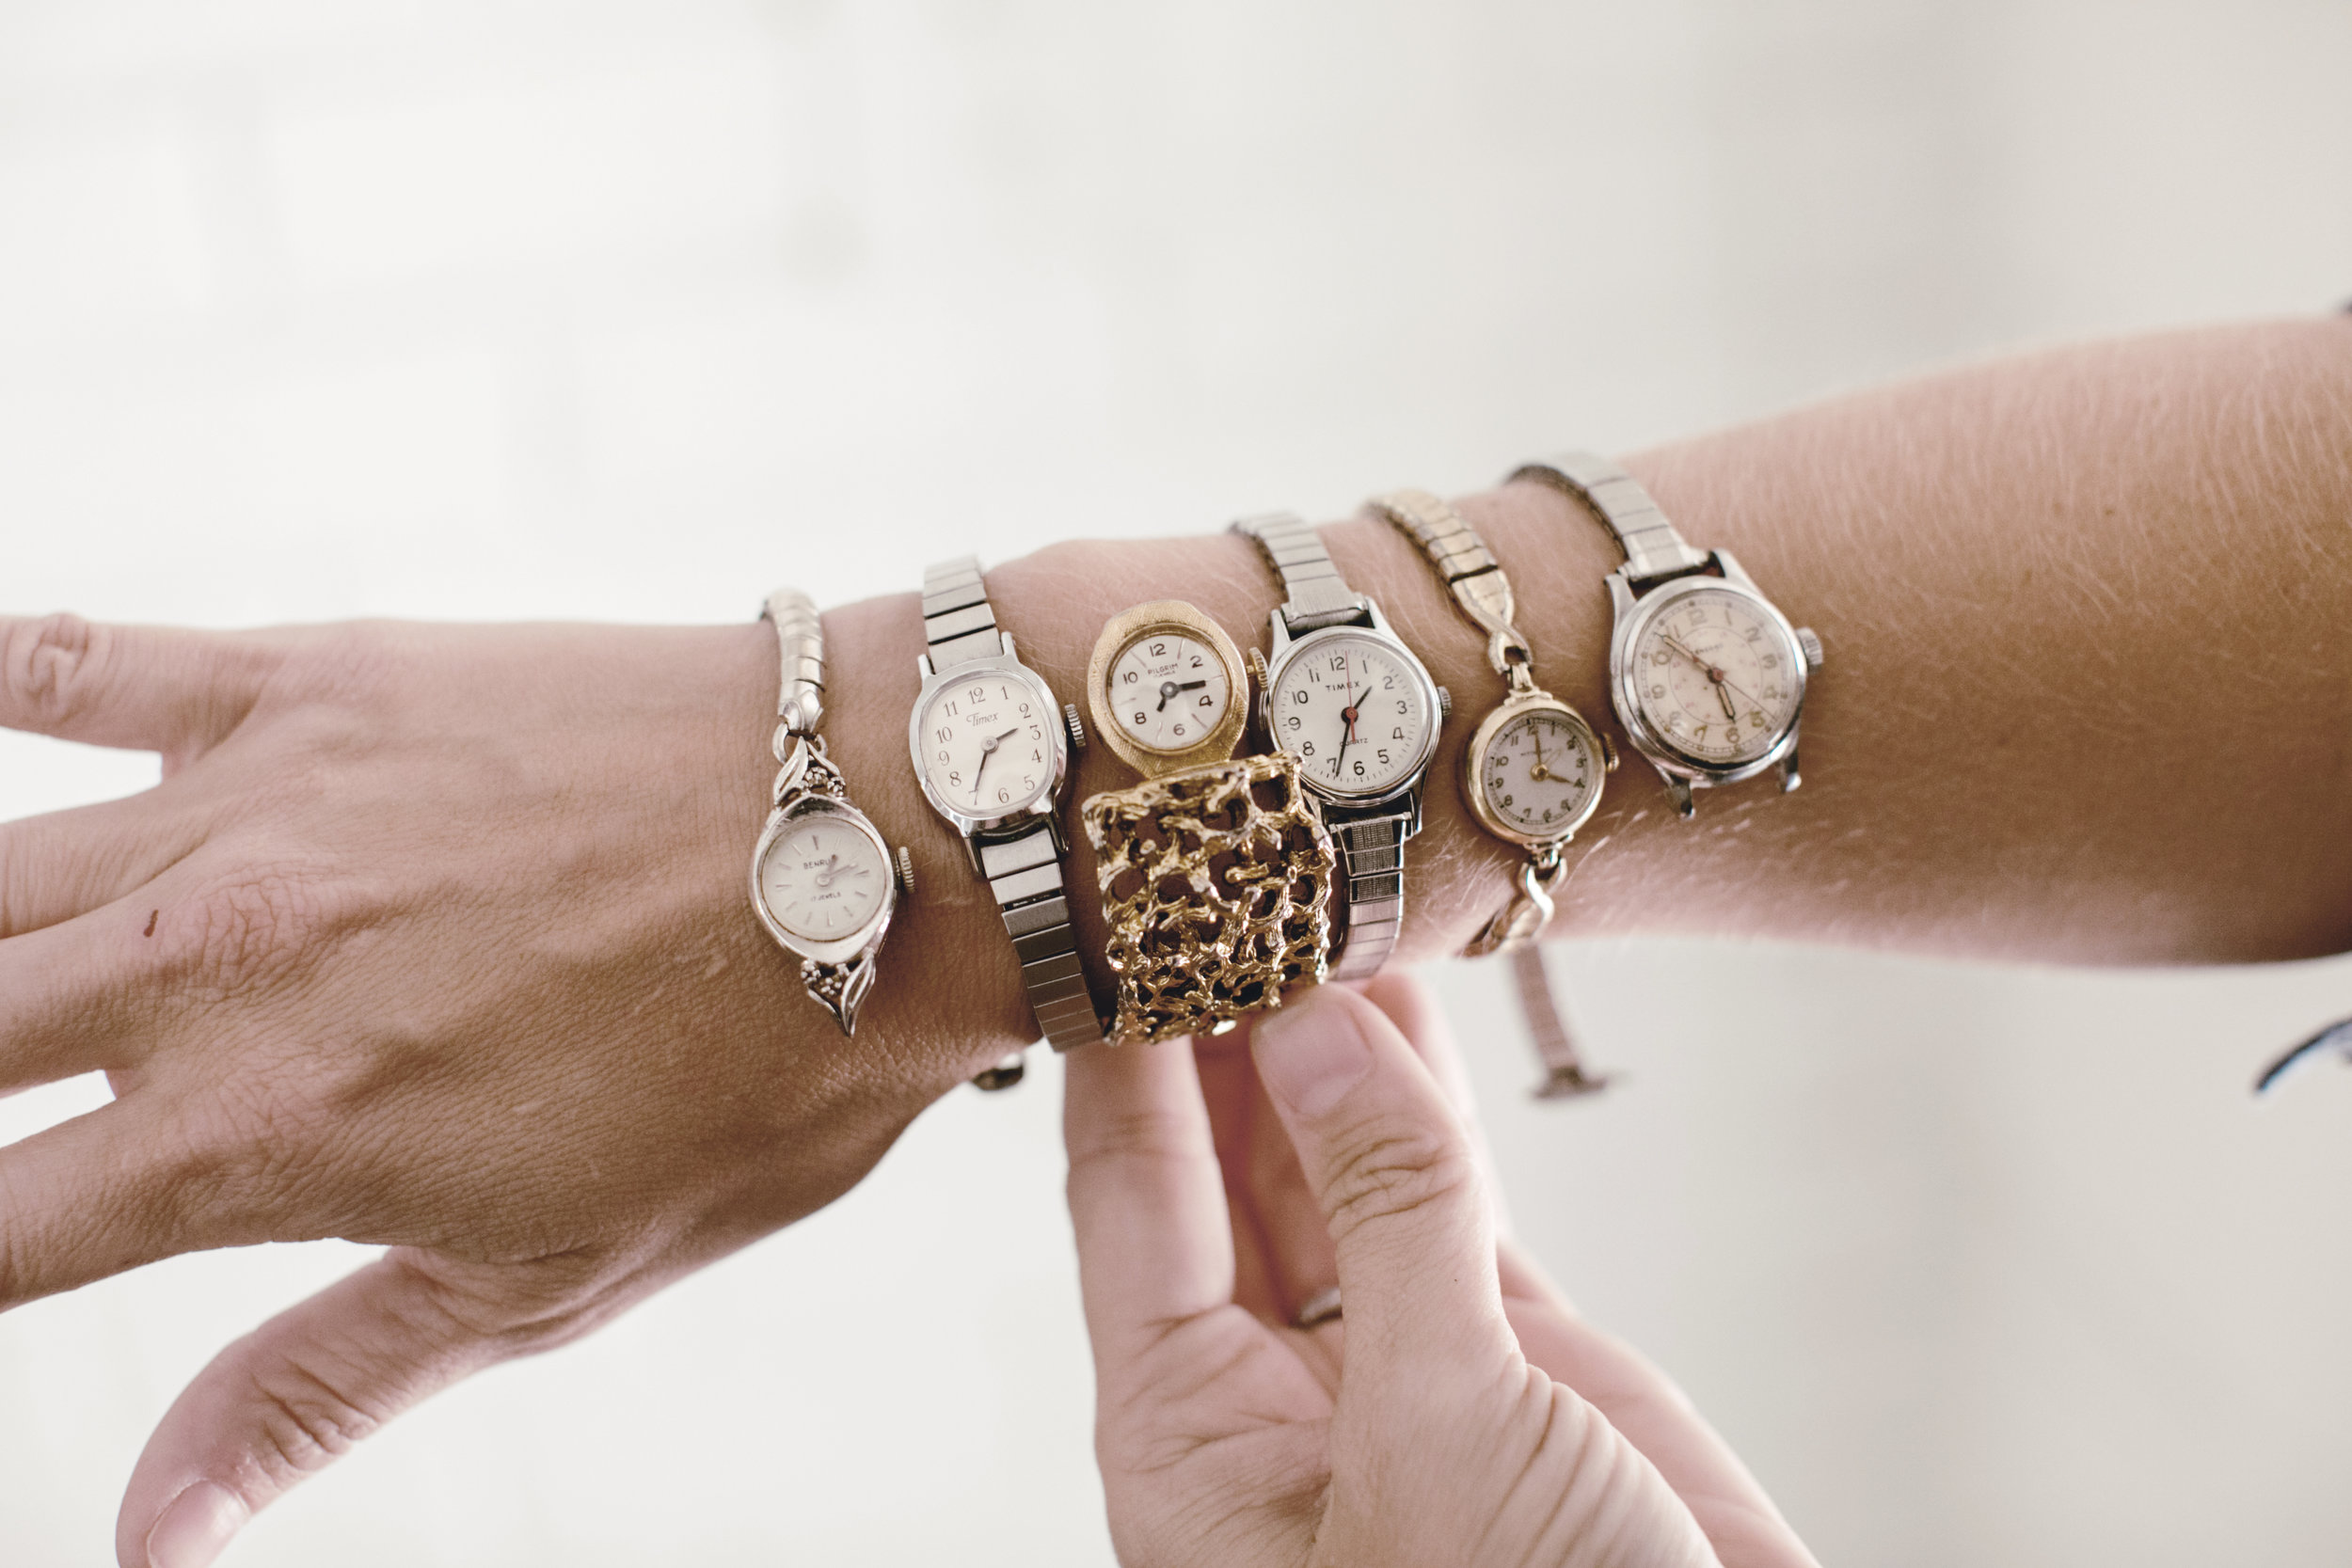 Collection of tiny vintage wrist watches / heirloomed